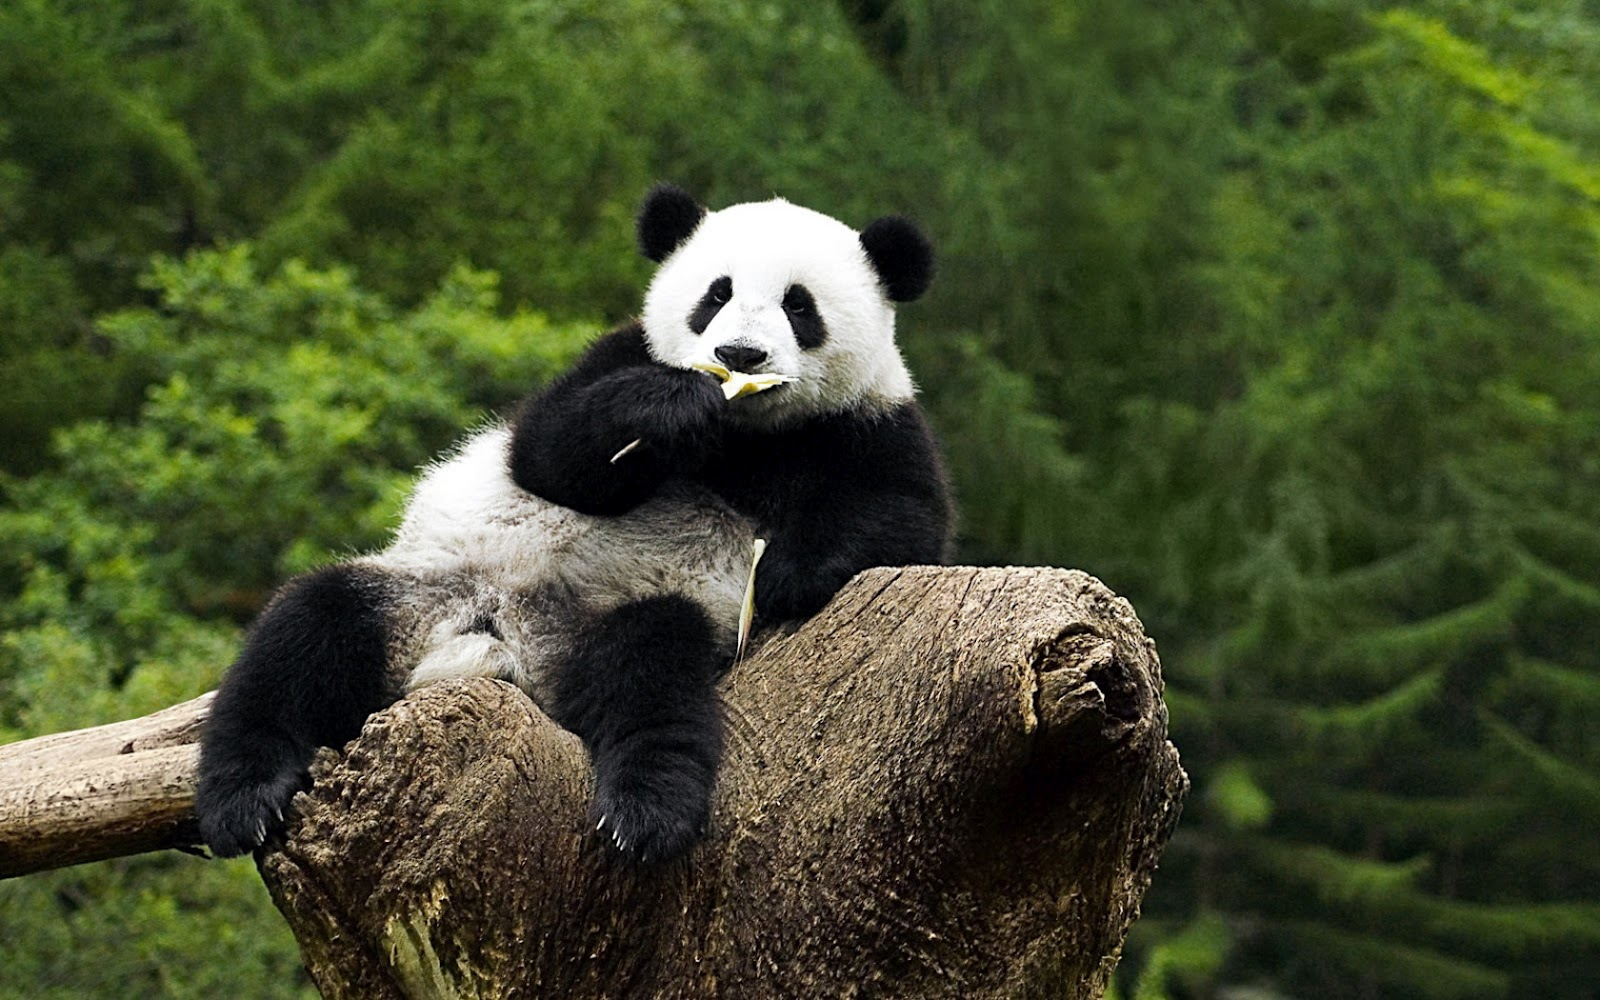 Hd Pictures Of Cute Animals: Animals Wallpapers: HD Cute Panda Wallpapers 2012